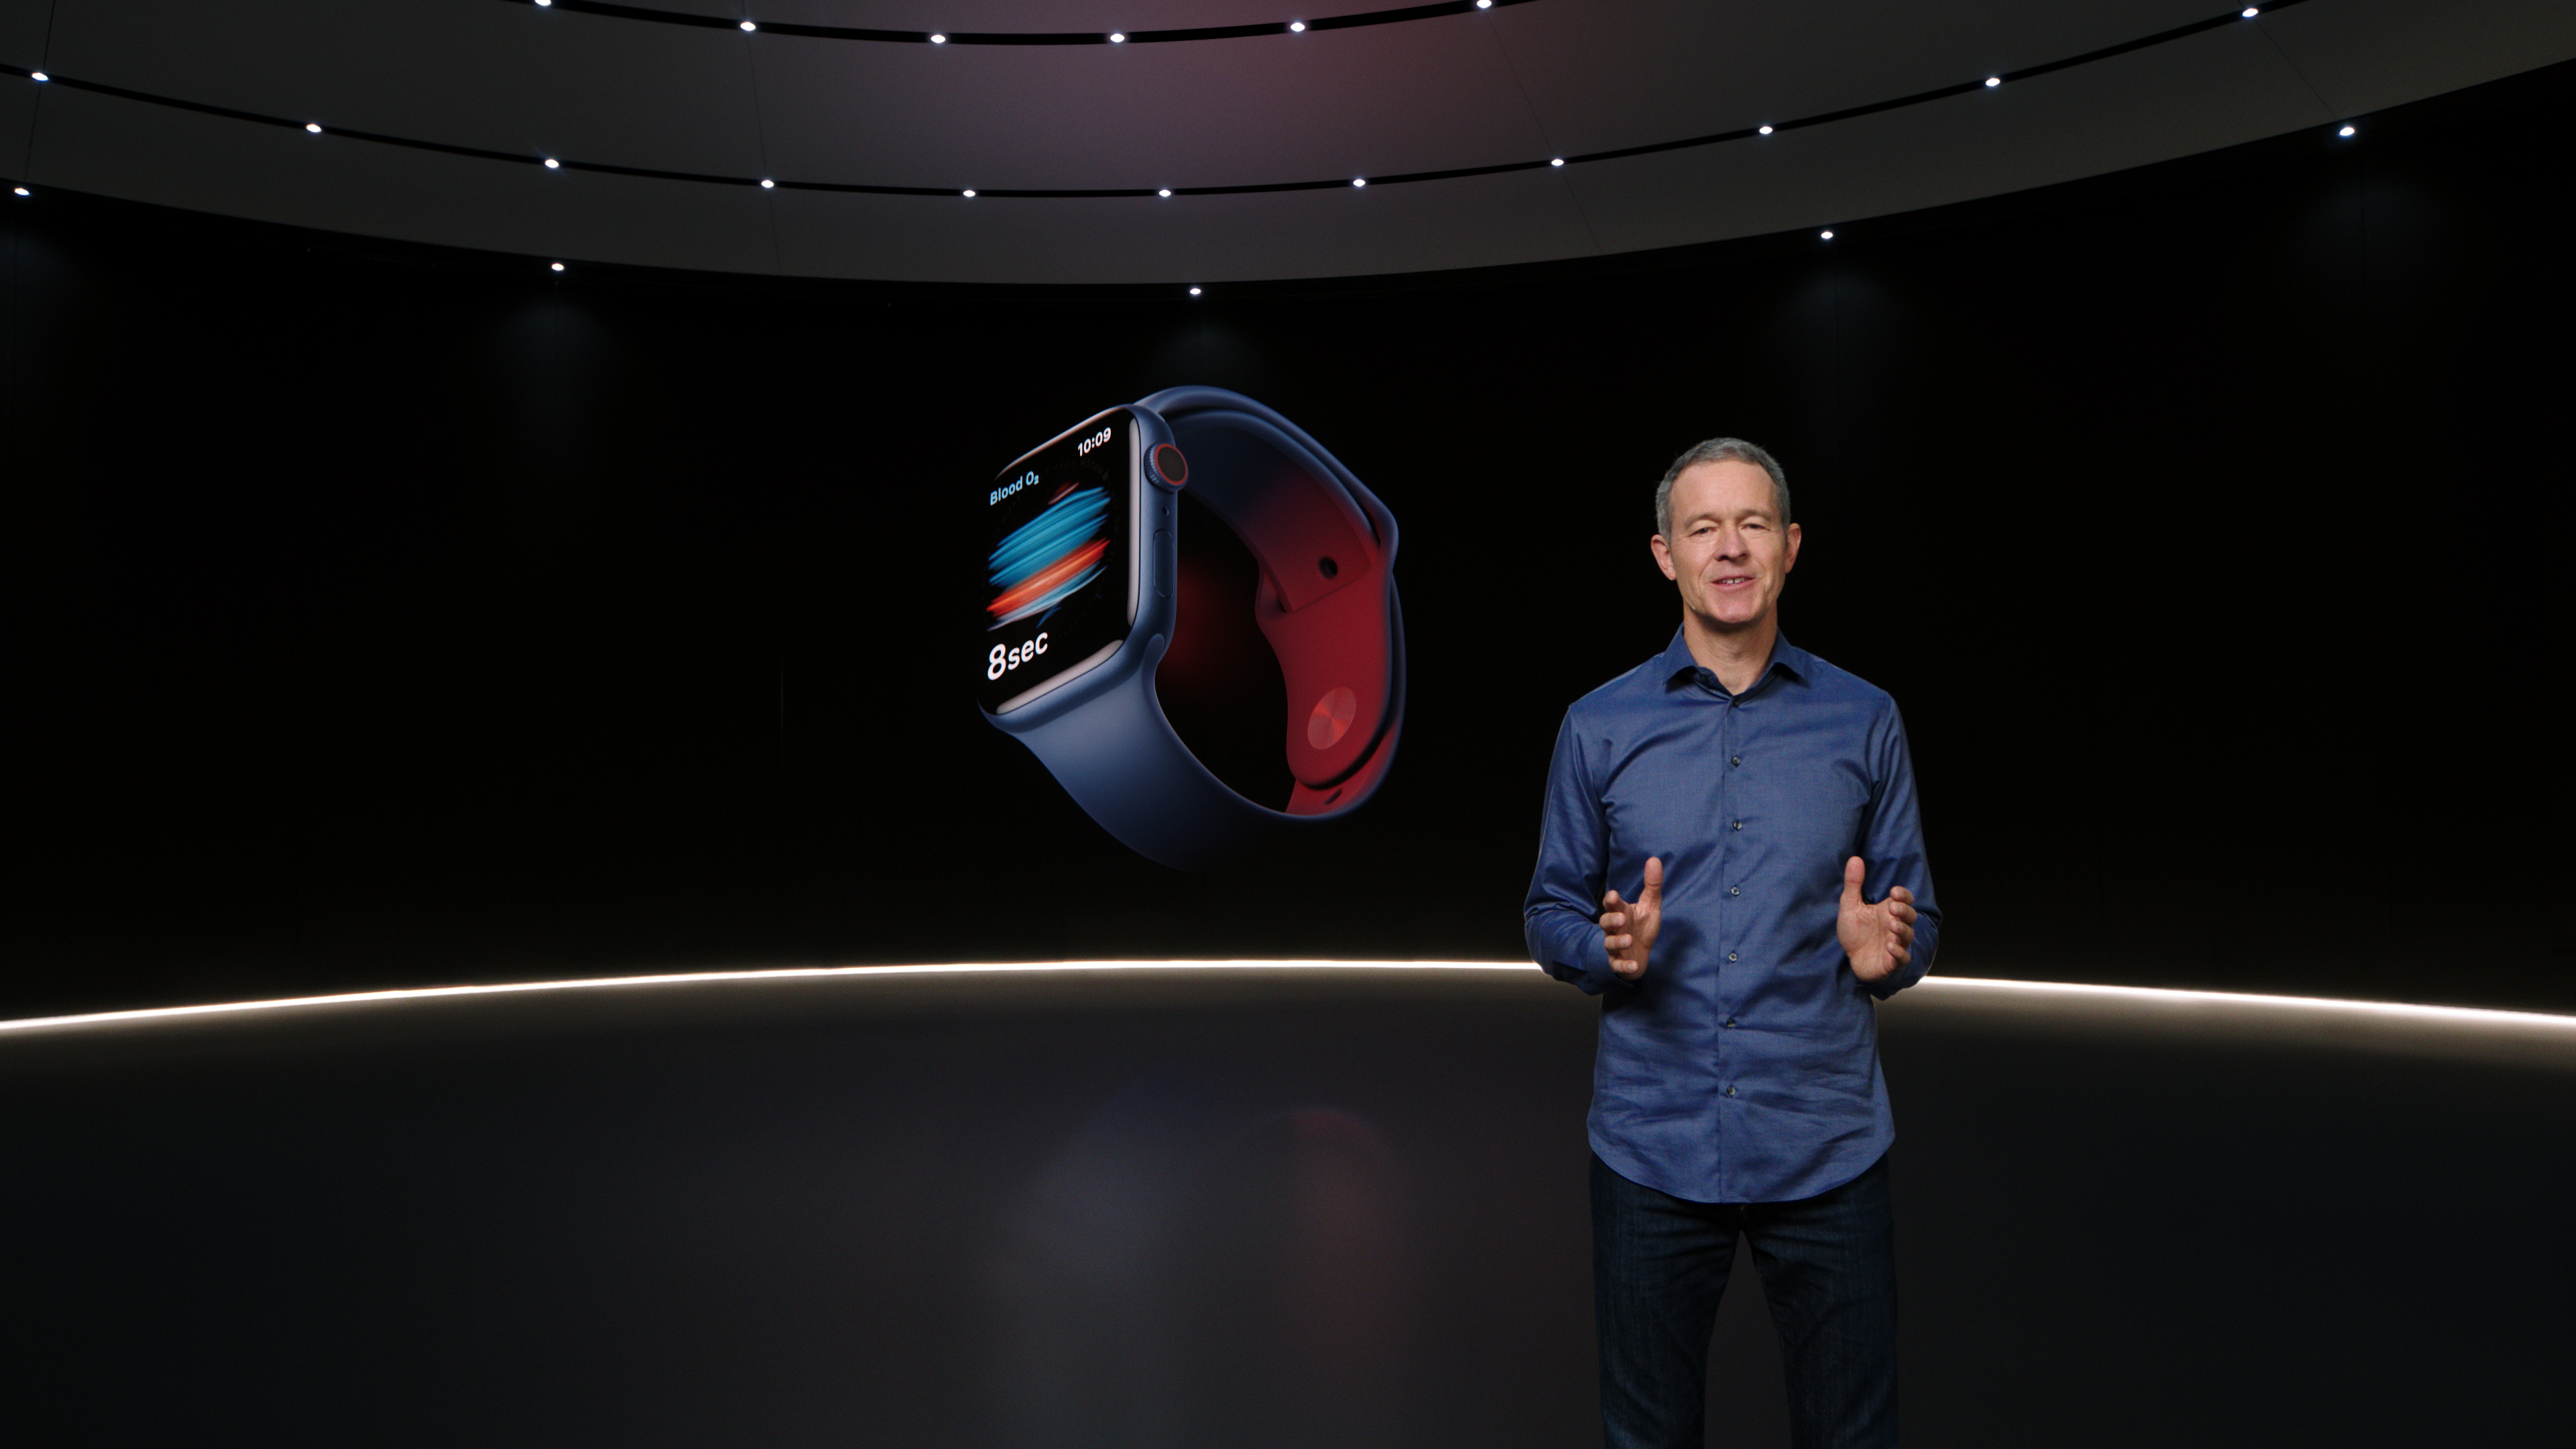 CUPERTINO, CALIFORNIA - SEPTEMBER 15, 2020: In this still image from the keynote video of a special event at Apple Park in Cupertino, California, Apple's Chief Operating Officer Jeff Williams unveils Apple Watch Series 6. (Photo Credit: Apple Inc.)